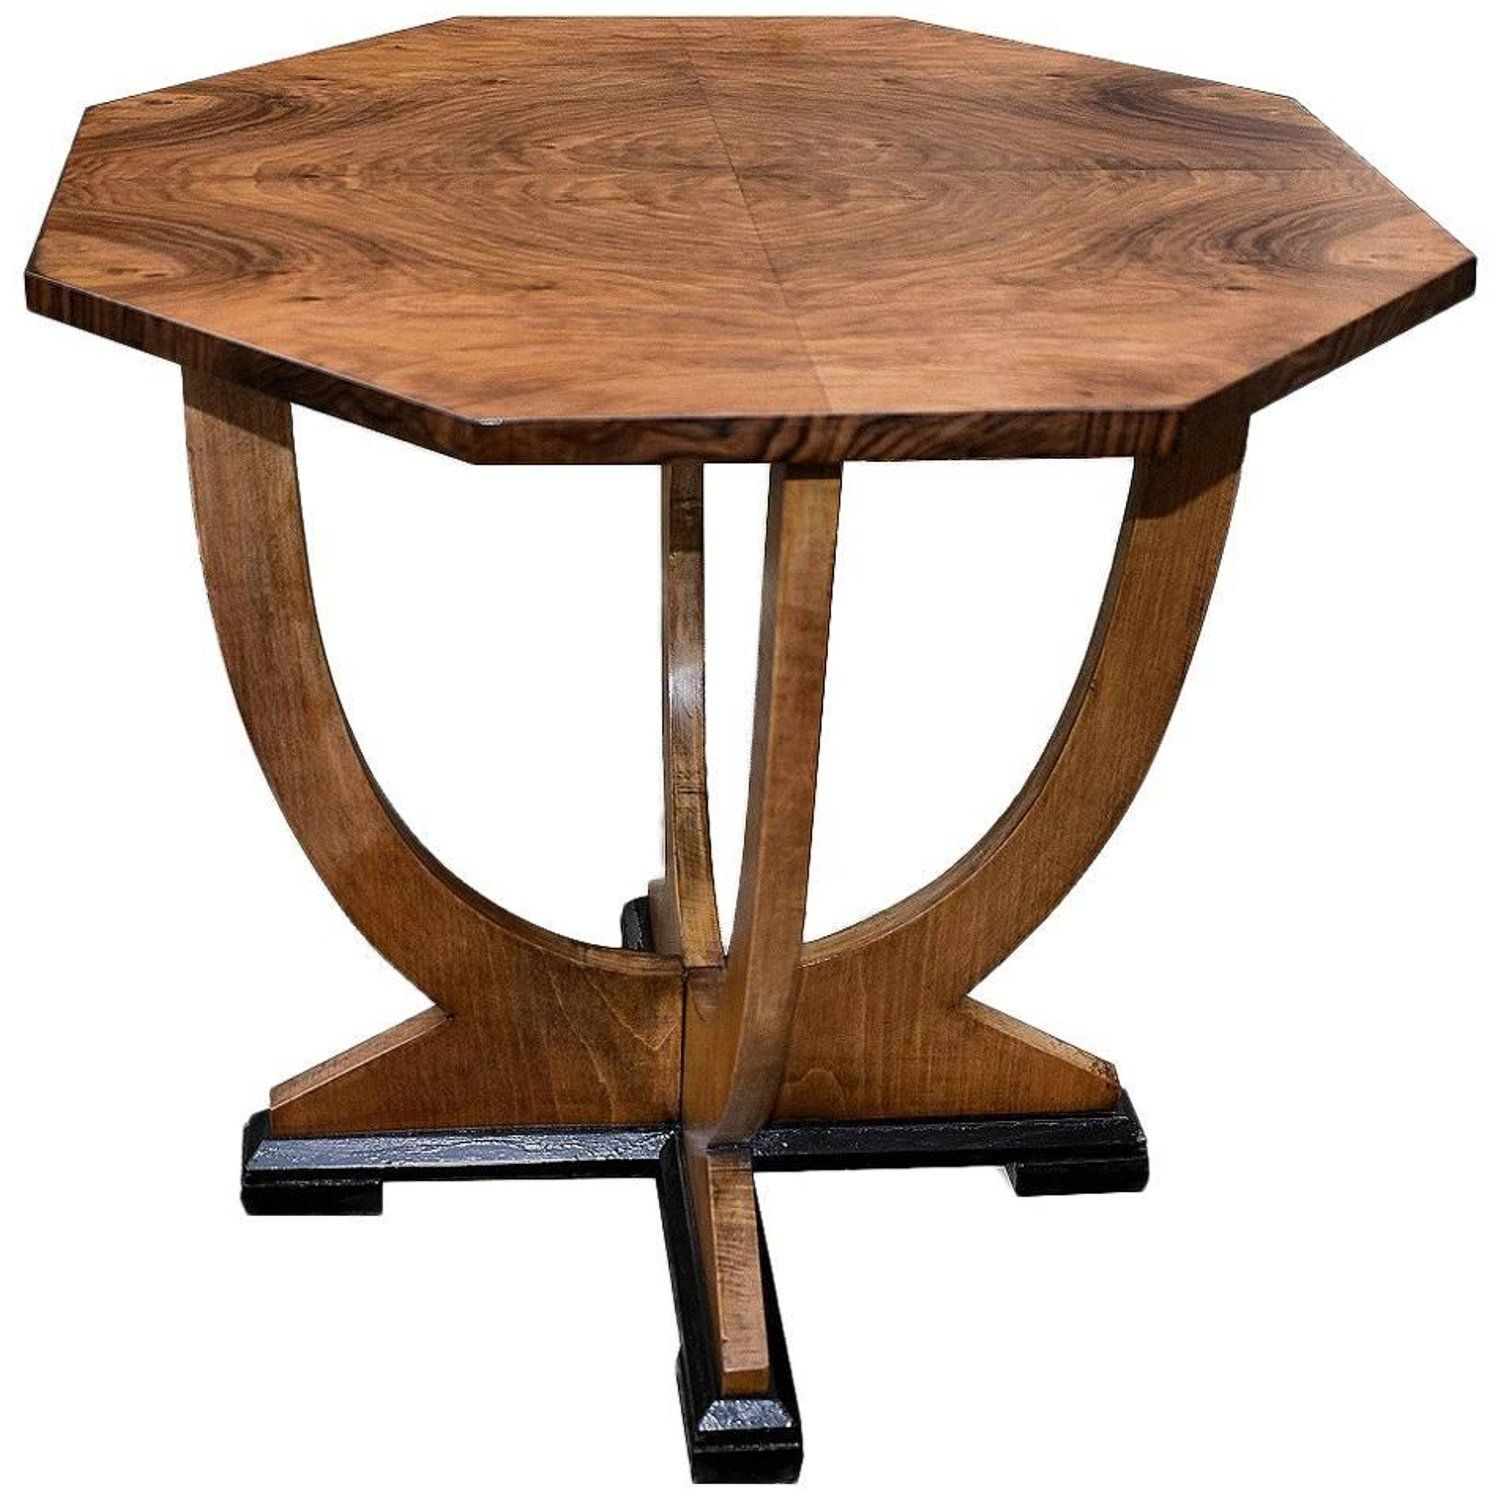 For Sale On  Original Art Deco Geometric Occasional Table